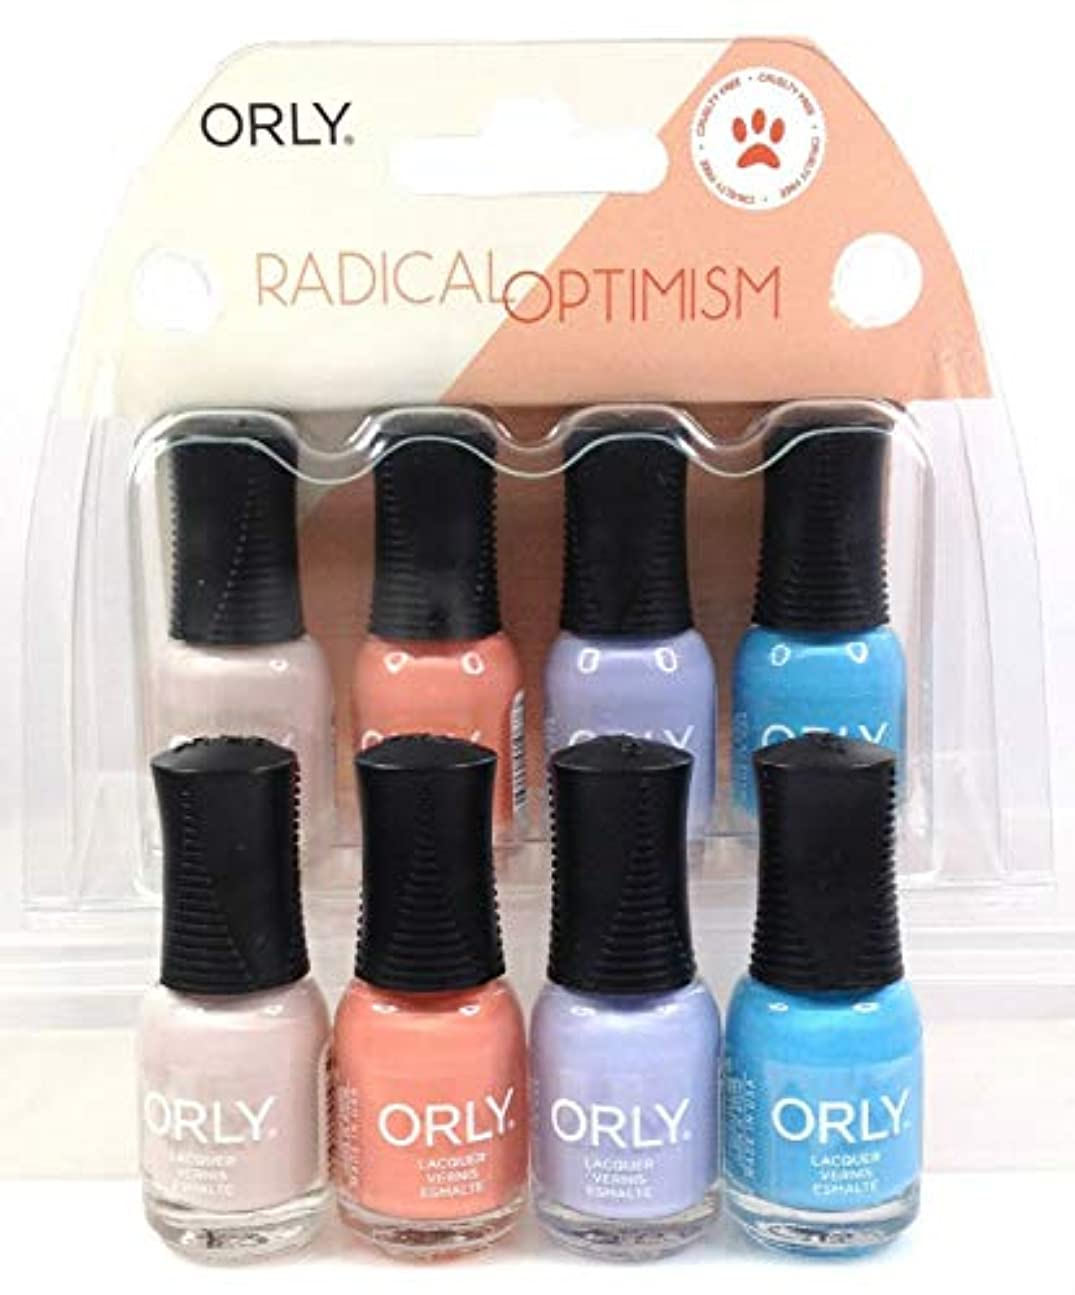 高める電気技師避難するOrly Nail Lacquer - Radical Optimism 2019 Collection - Mini 4 Pack - 5.3mL / 0.18oz